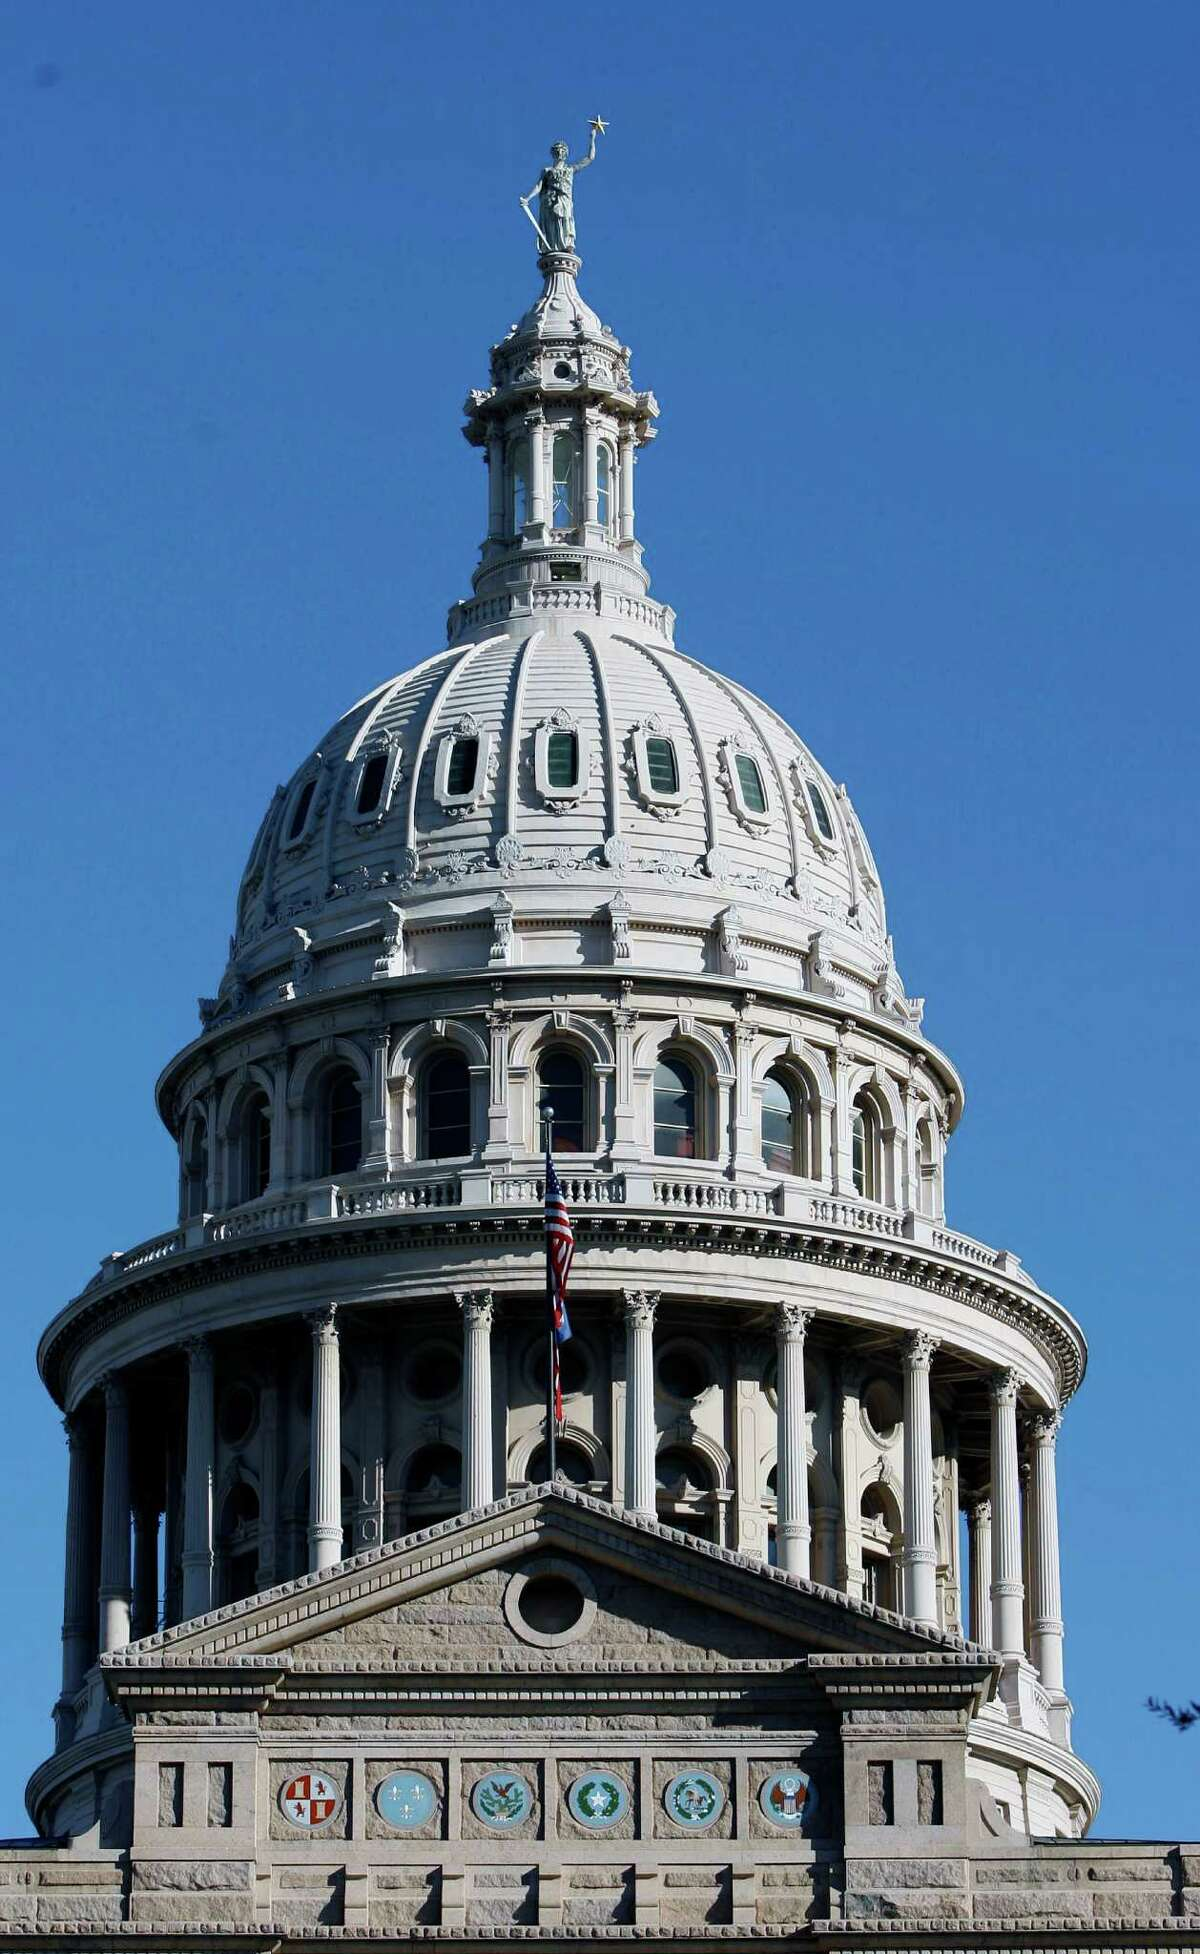 To do their jobs well, Texas lawmakers will need to be able to freely assess the state's needs when they convene at the Capitol in the next legislative session.